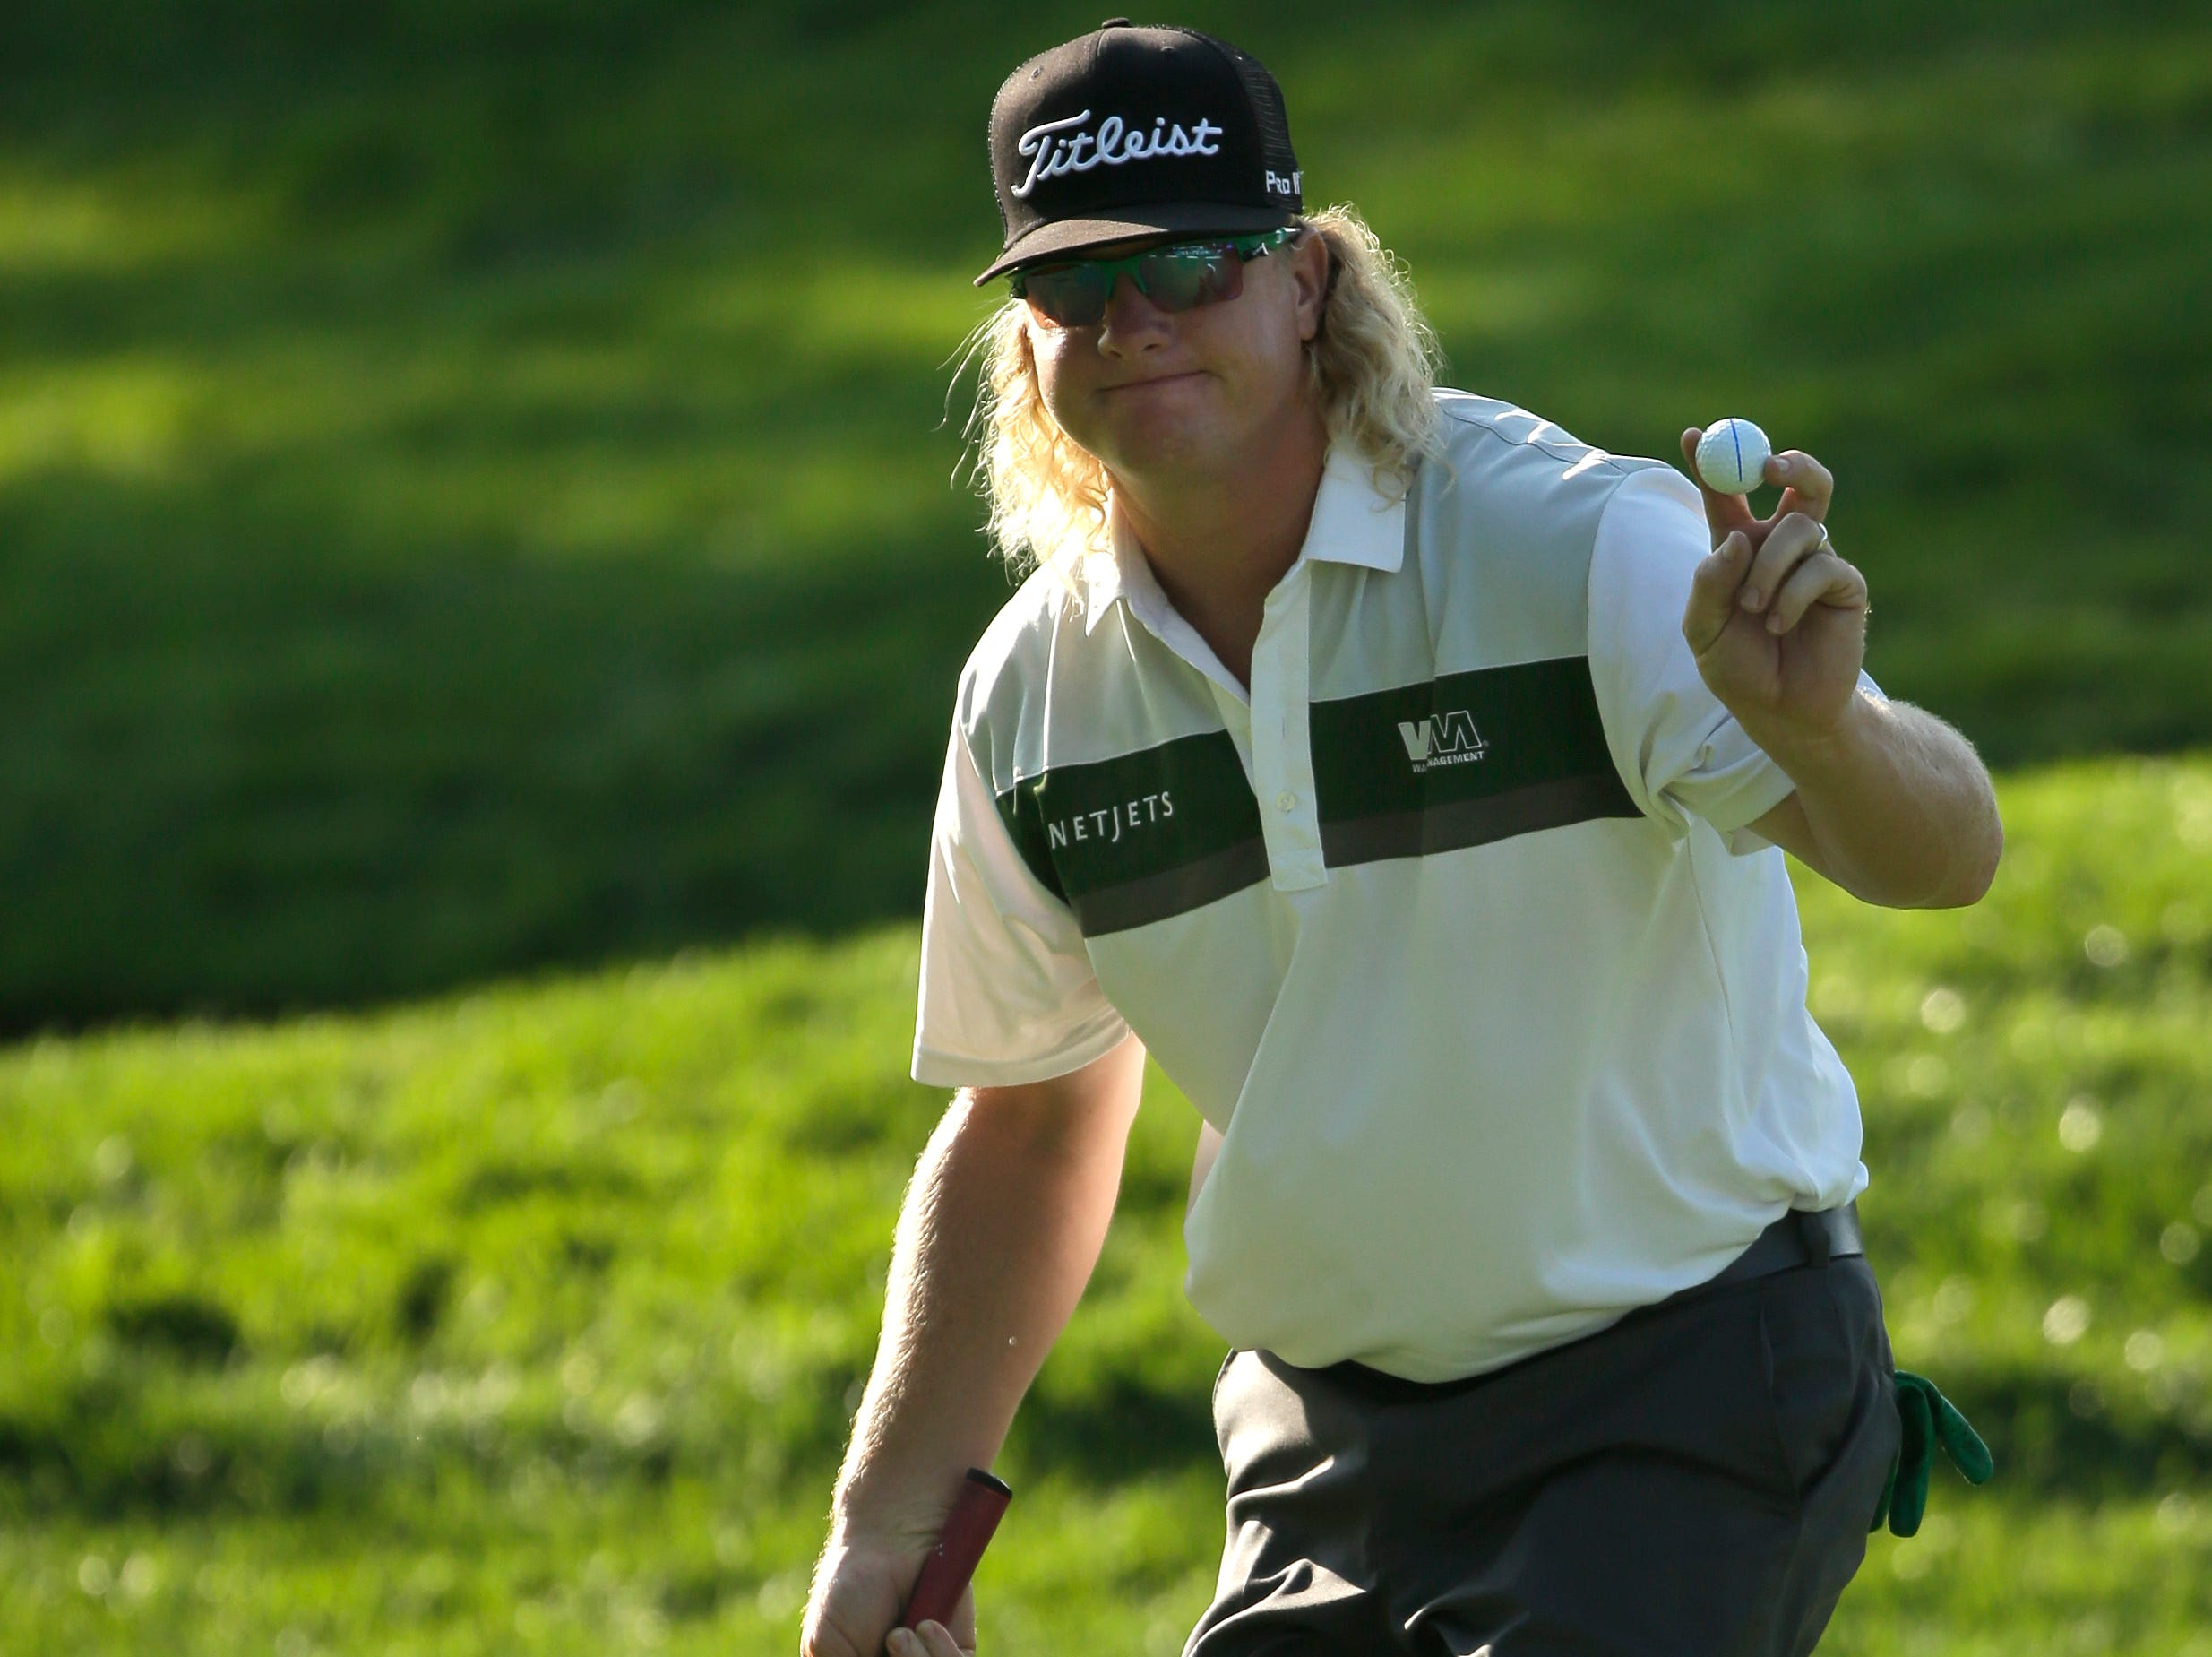 Charley Hoffman waves after a birdie putt on the 10th hole during the first round of the PGA Championship golf tournament at Oak Hill Country Club.